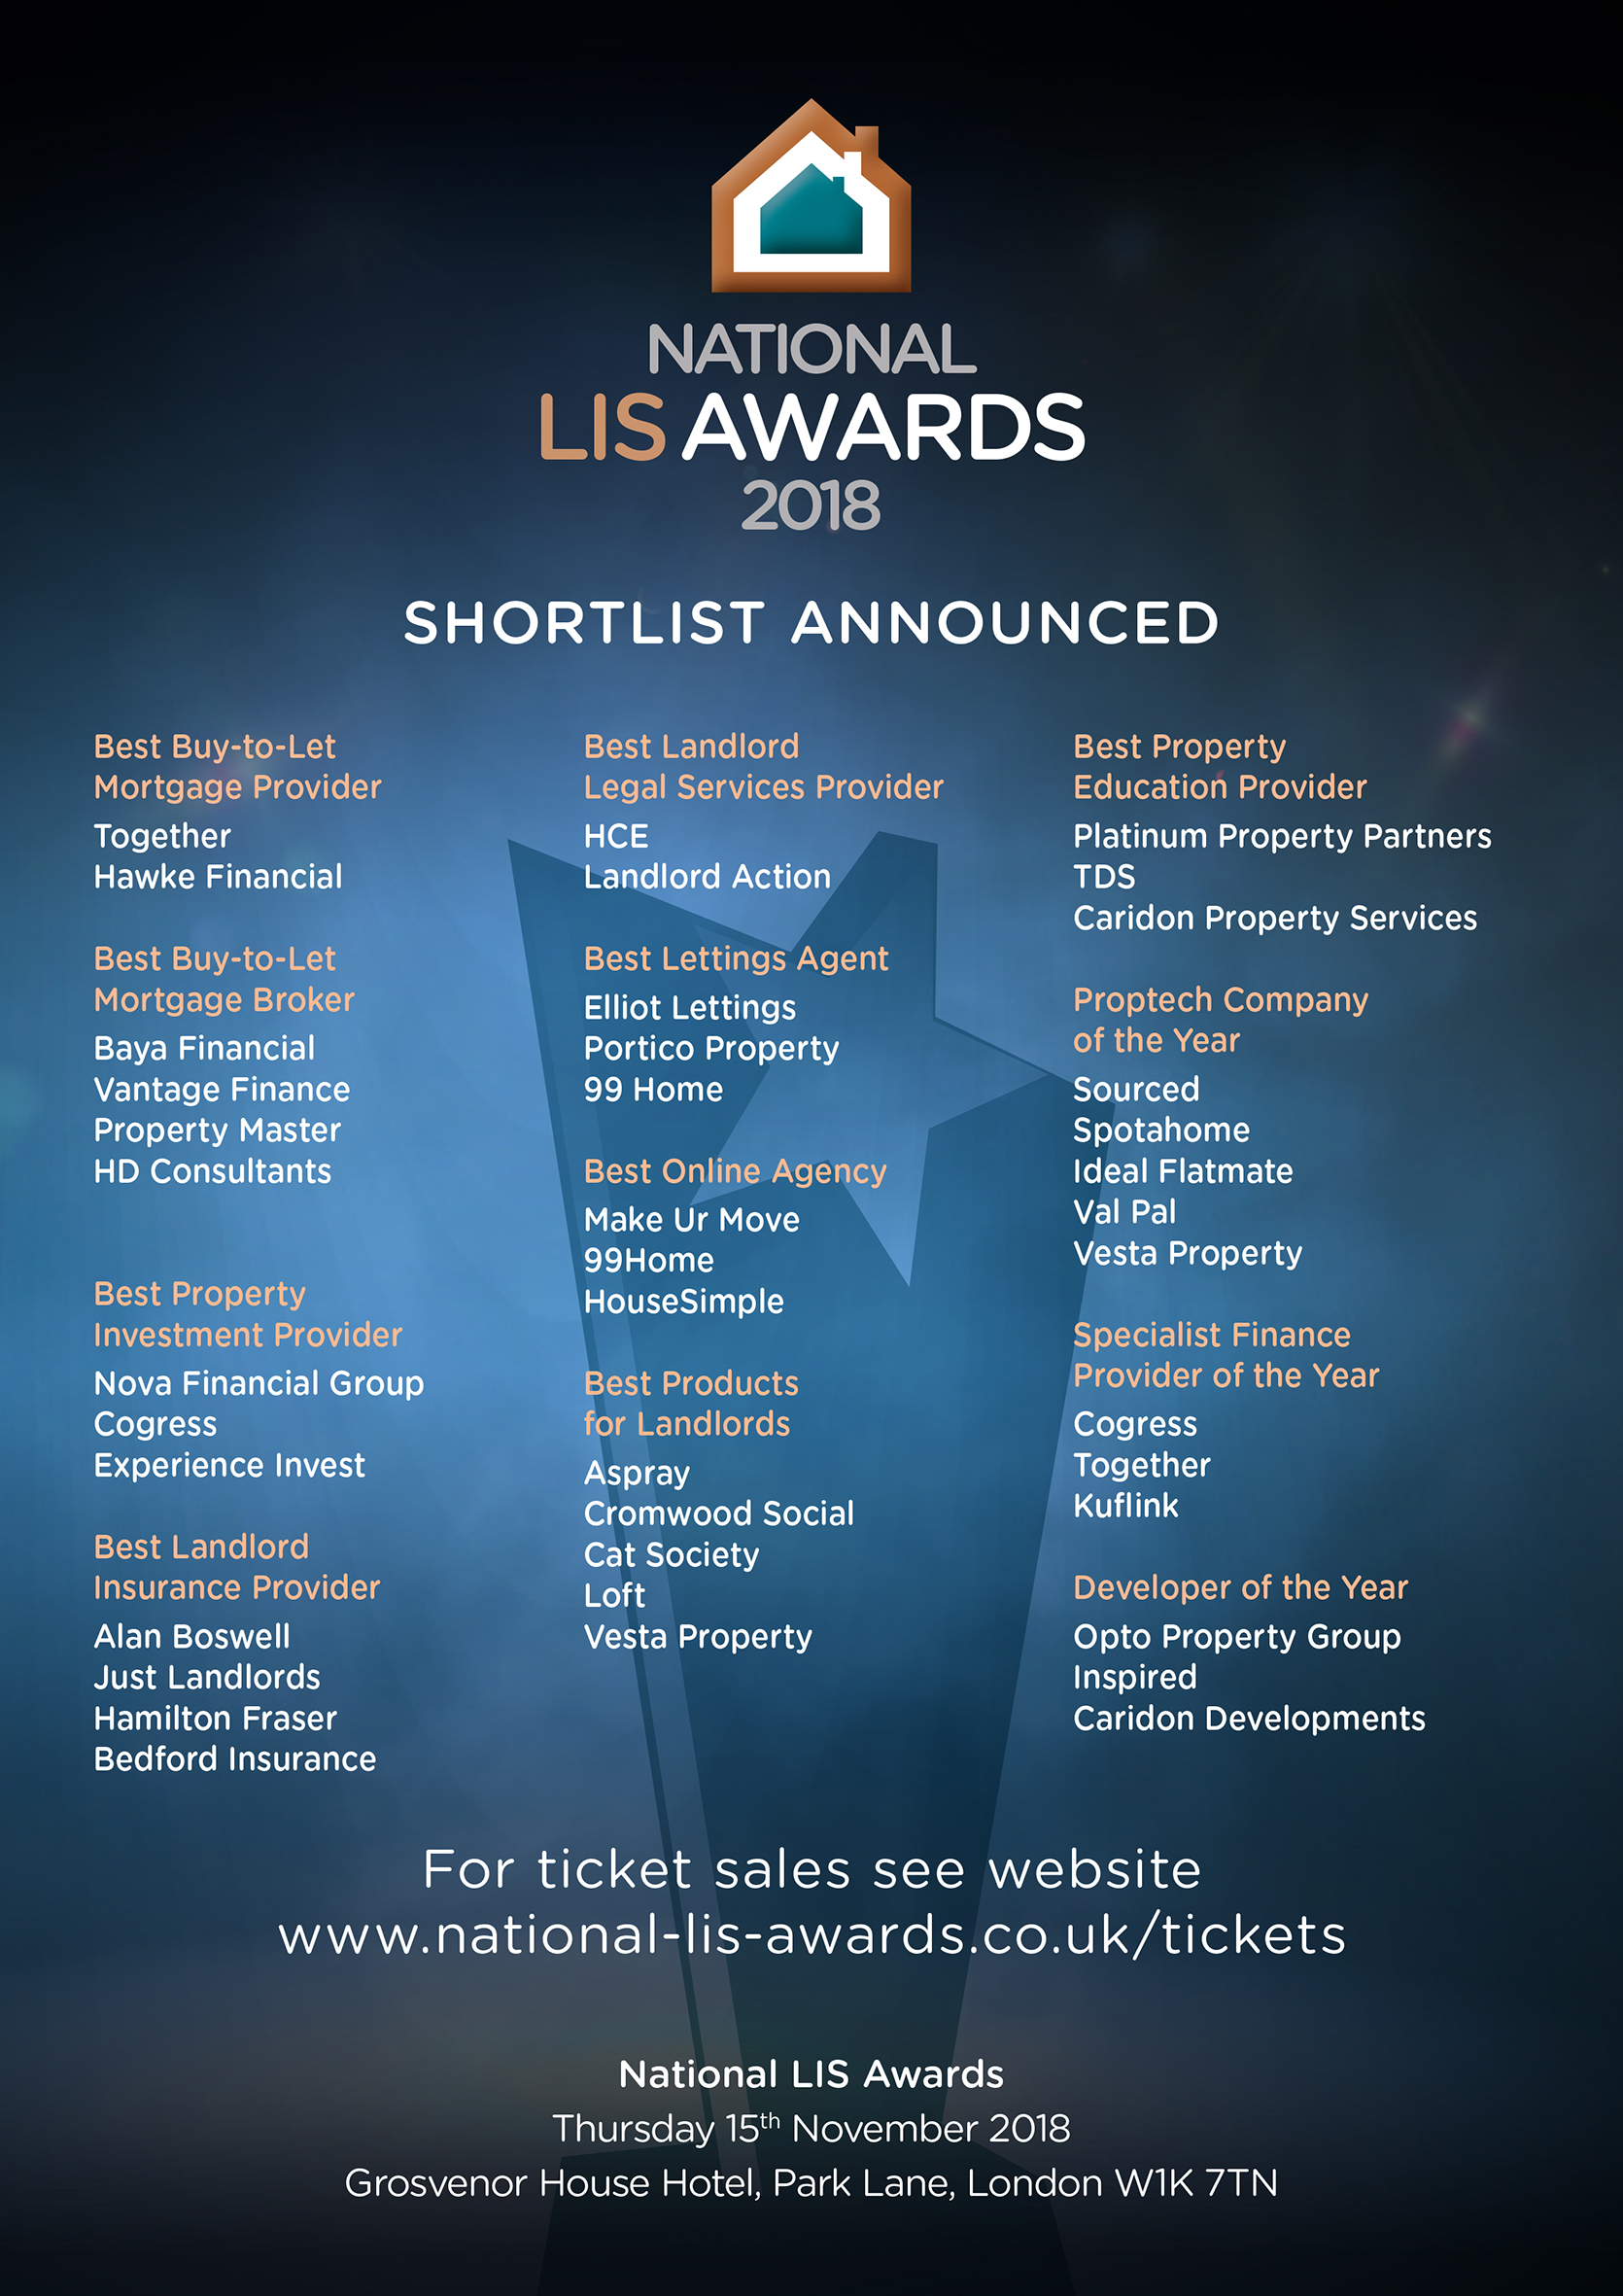 National LIS Awards shortlist announced!